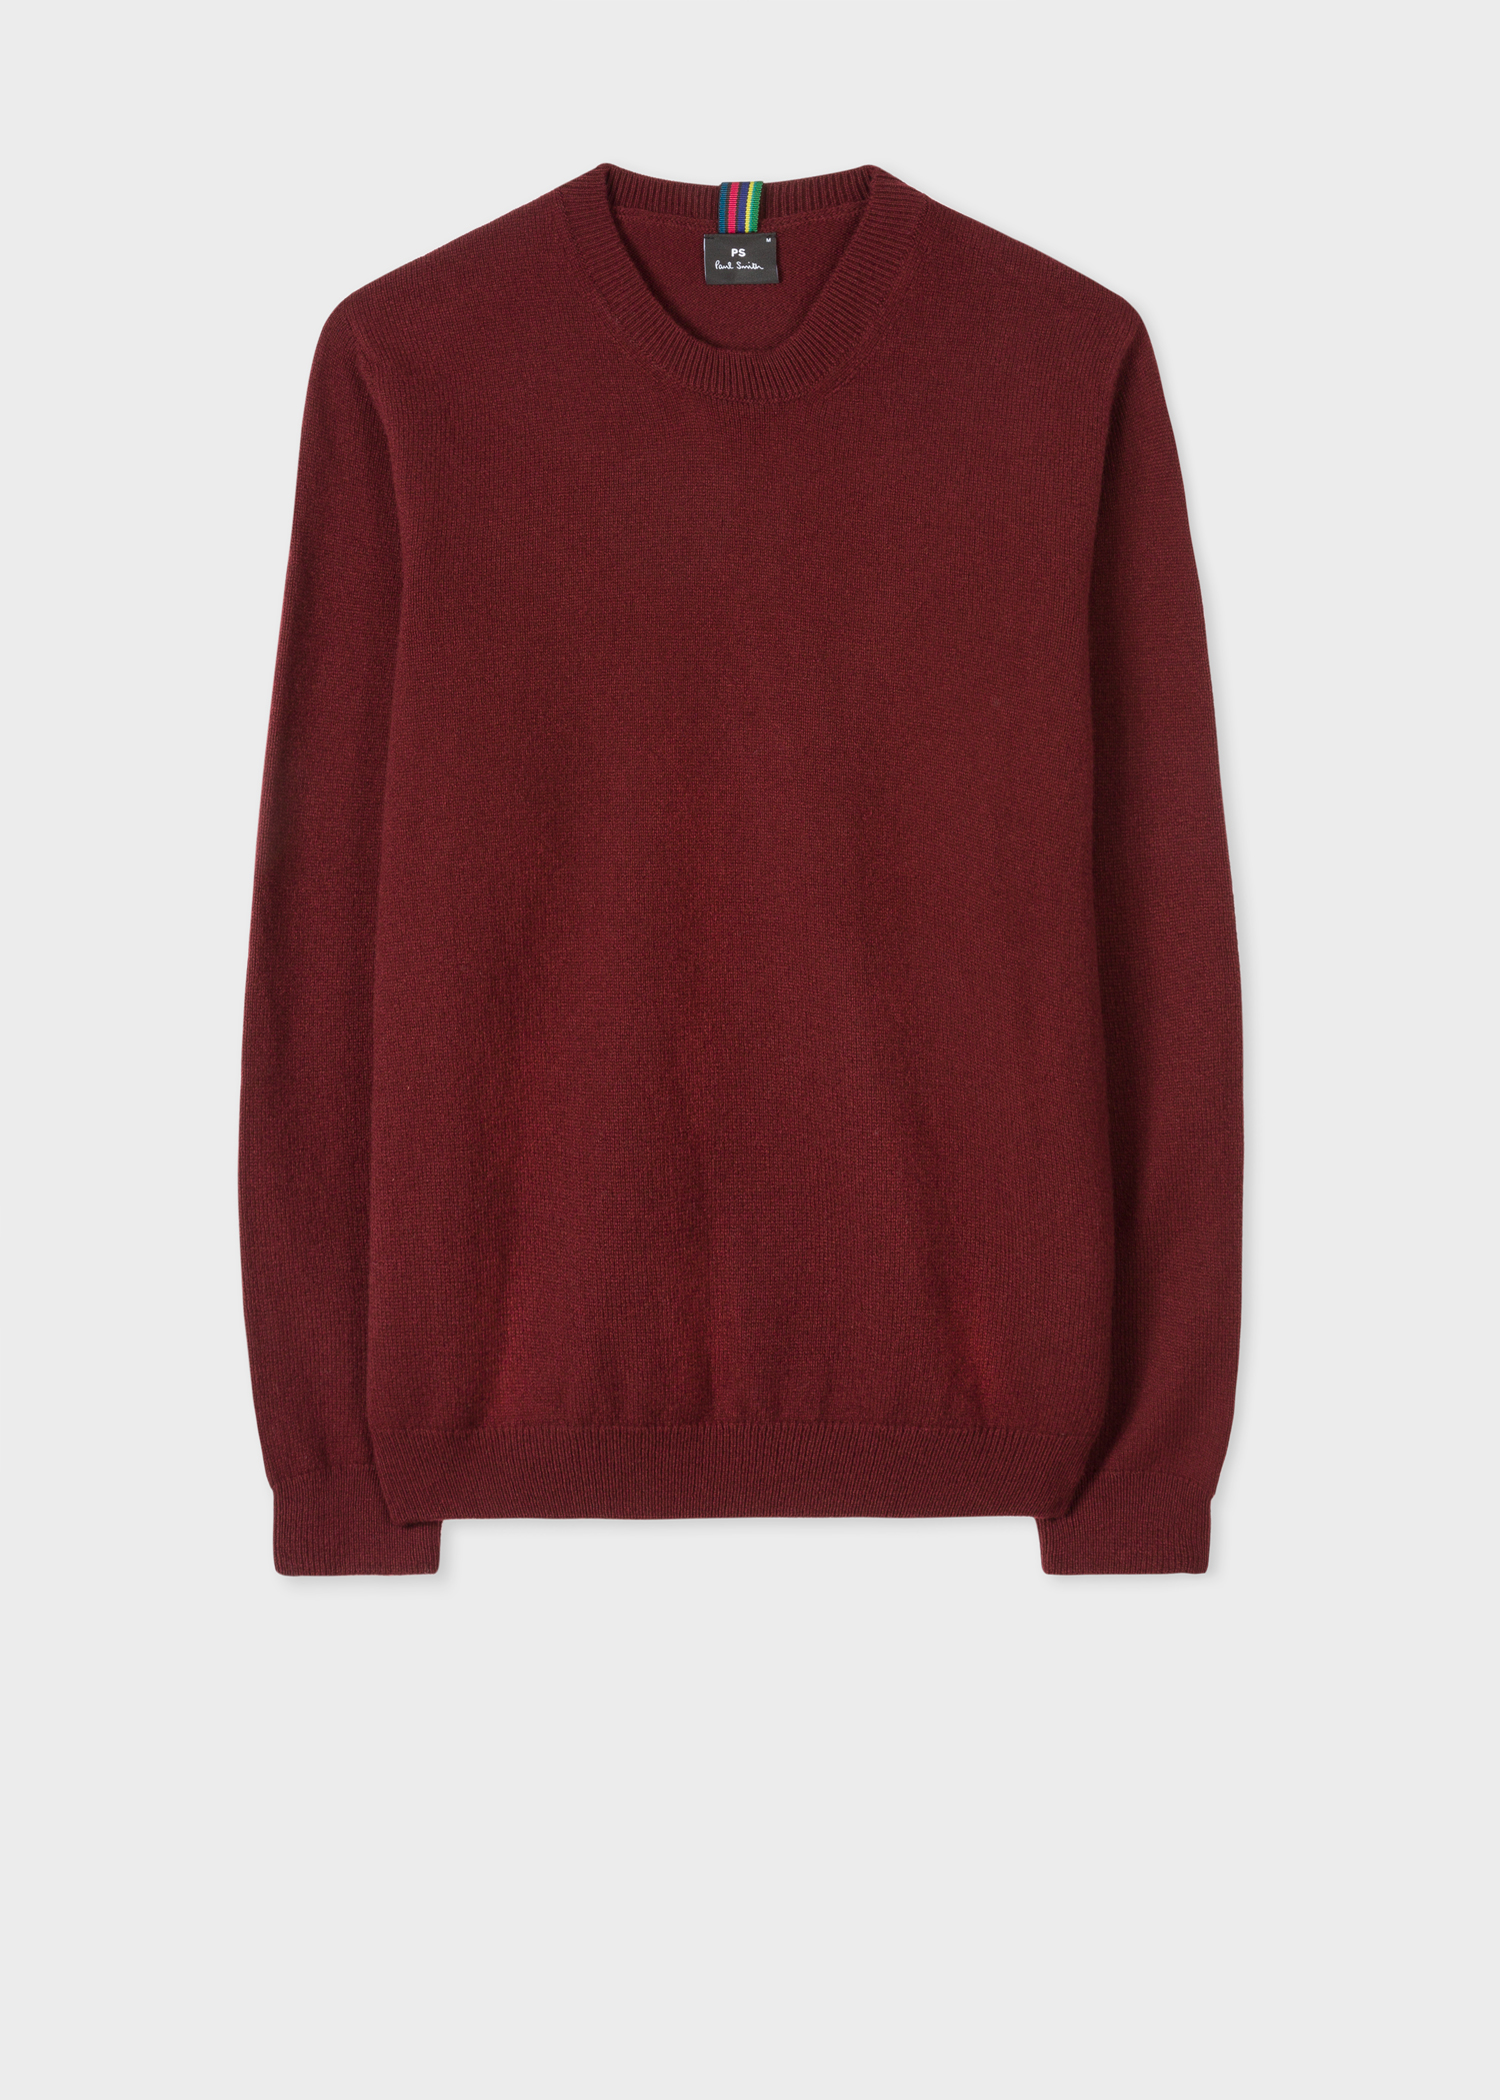 e6d3fcfd3cf5 Men s Burgundy Lambswool Sweater - Paul Smith